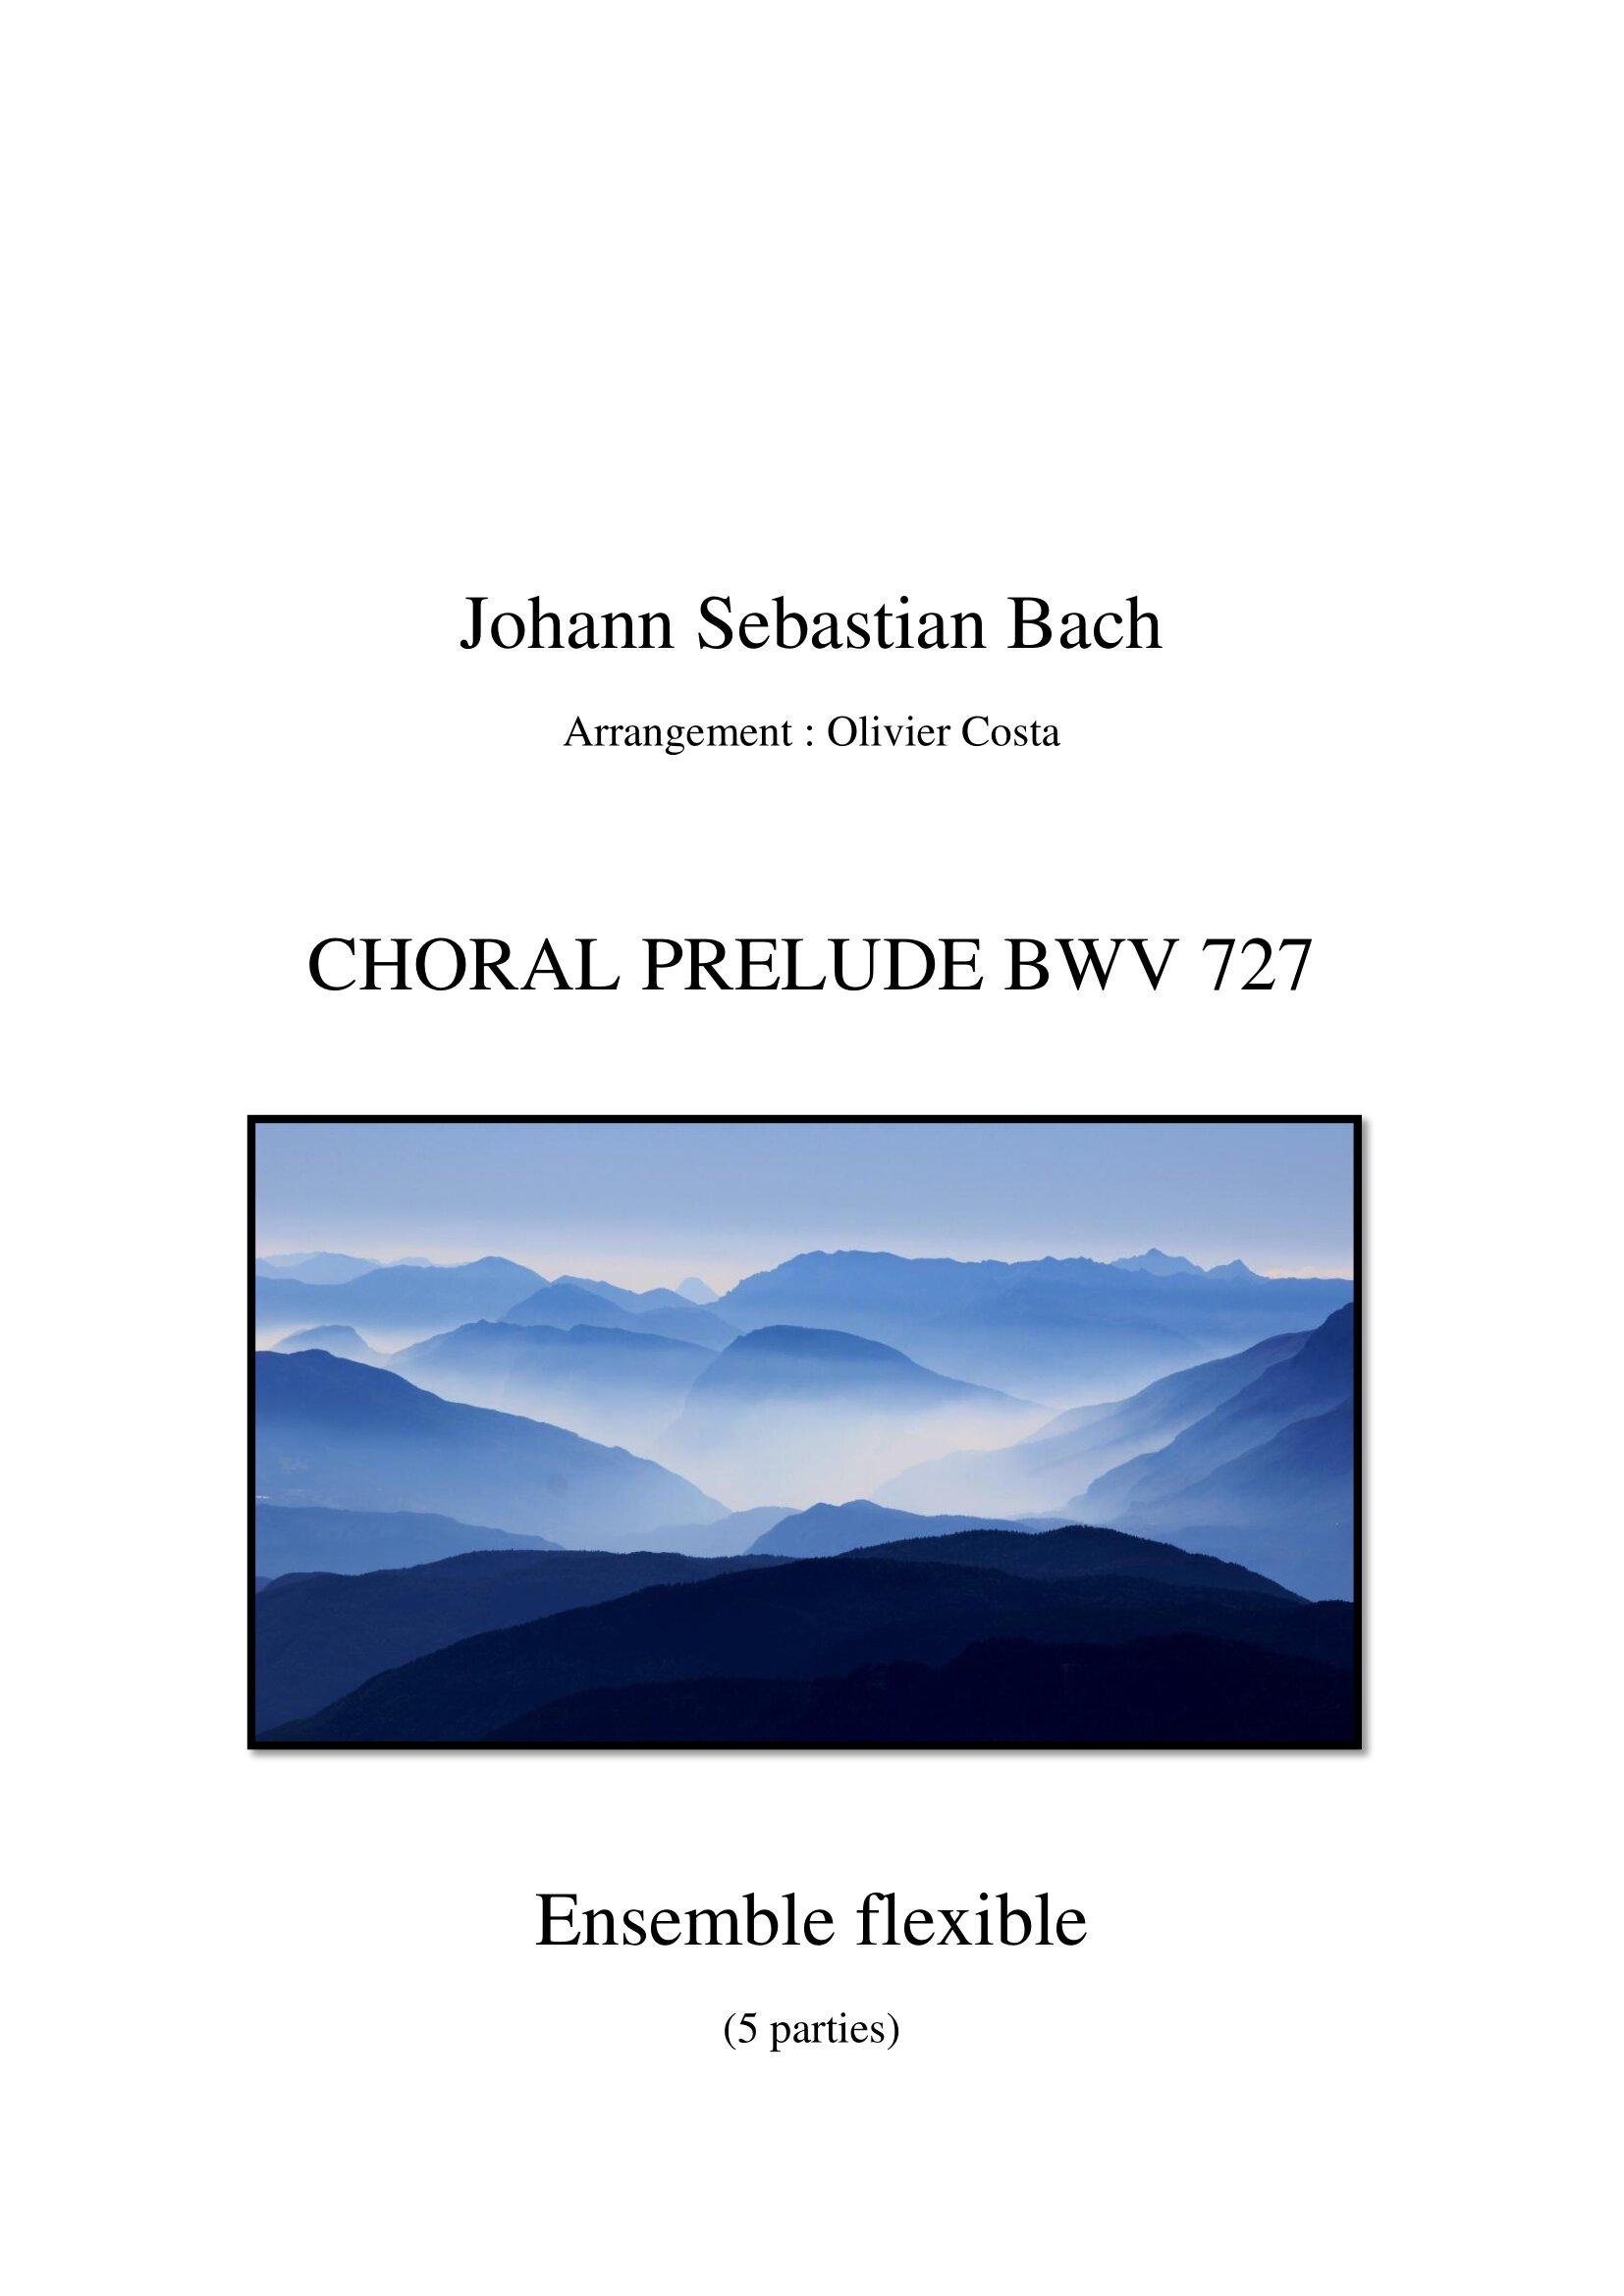 Choral bwv 727 - Flexible